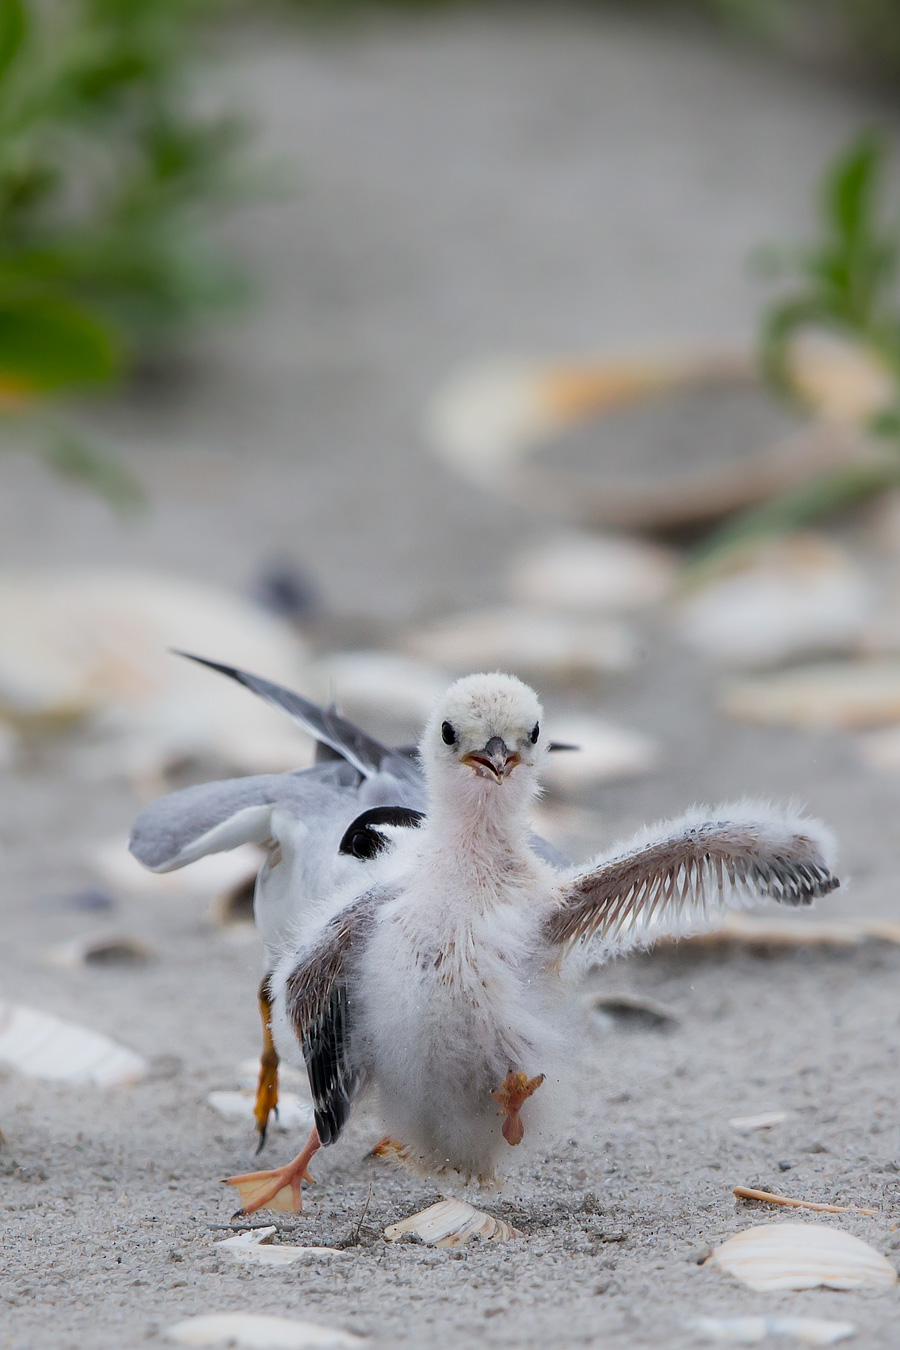 In this followup to the previous Most Love For The Least Tern Readings, Operation Snuggletime and Operation NomNom, we infiltrate a Least Tern Colony the extremely ruff-n-tumble nature of life in the colony.